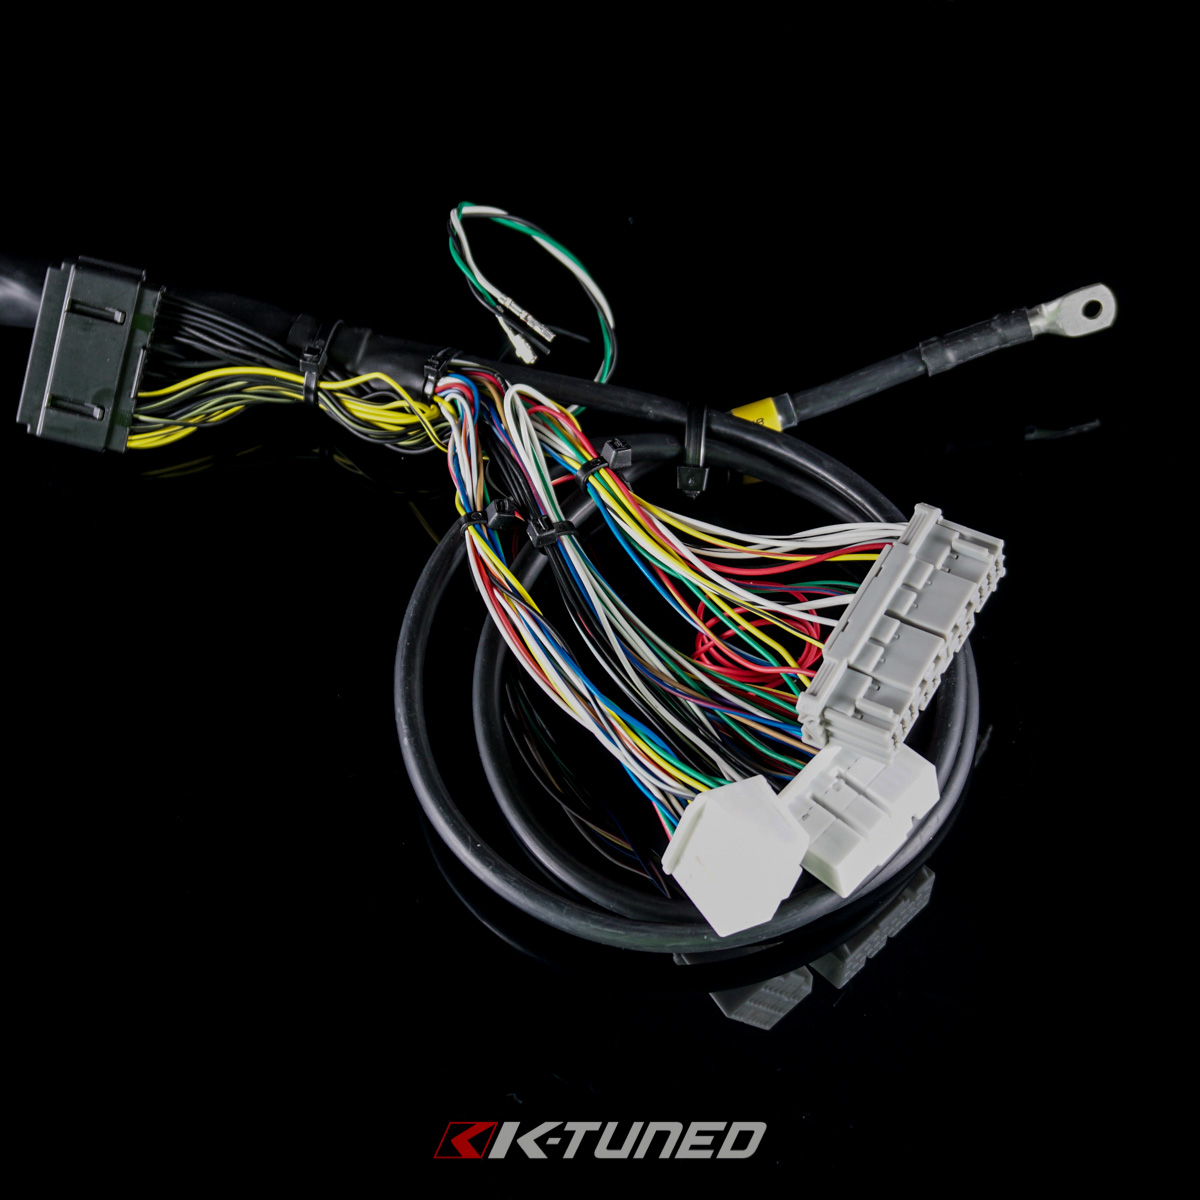 K Series Tucked Engine Harness S2000 Pro Wiring Install Quick View